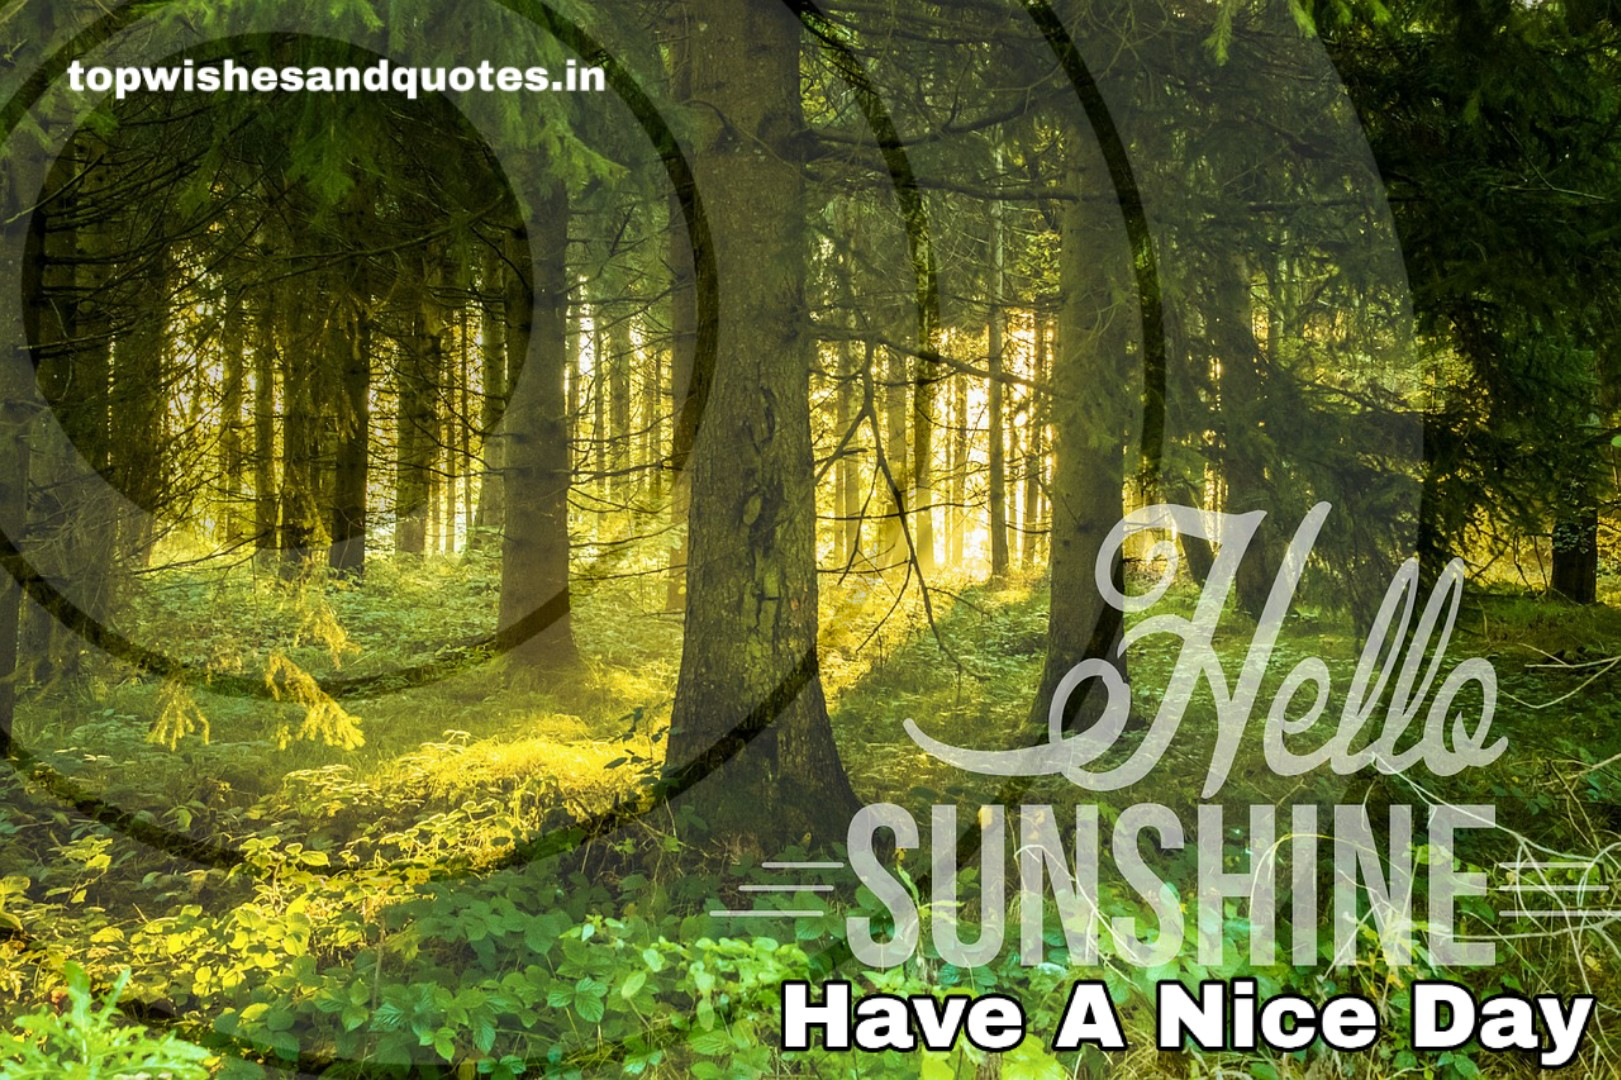 Best 310+ Good Morning Wishes, Quotes, Status and Good Morning Images for family and Friends